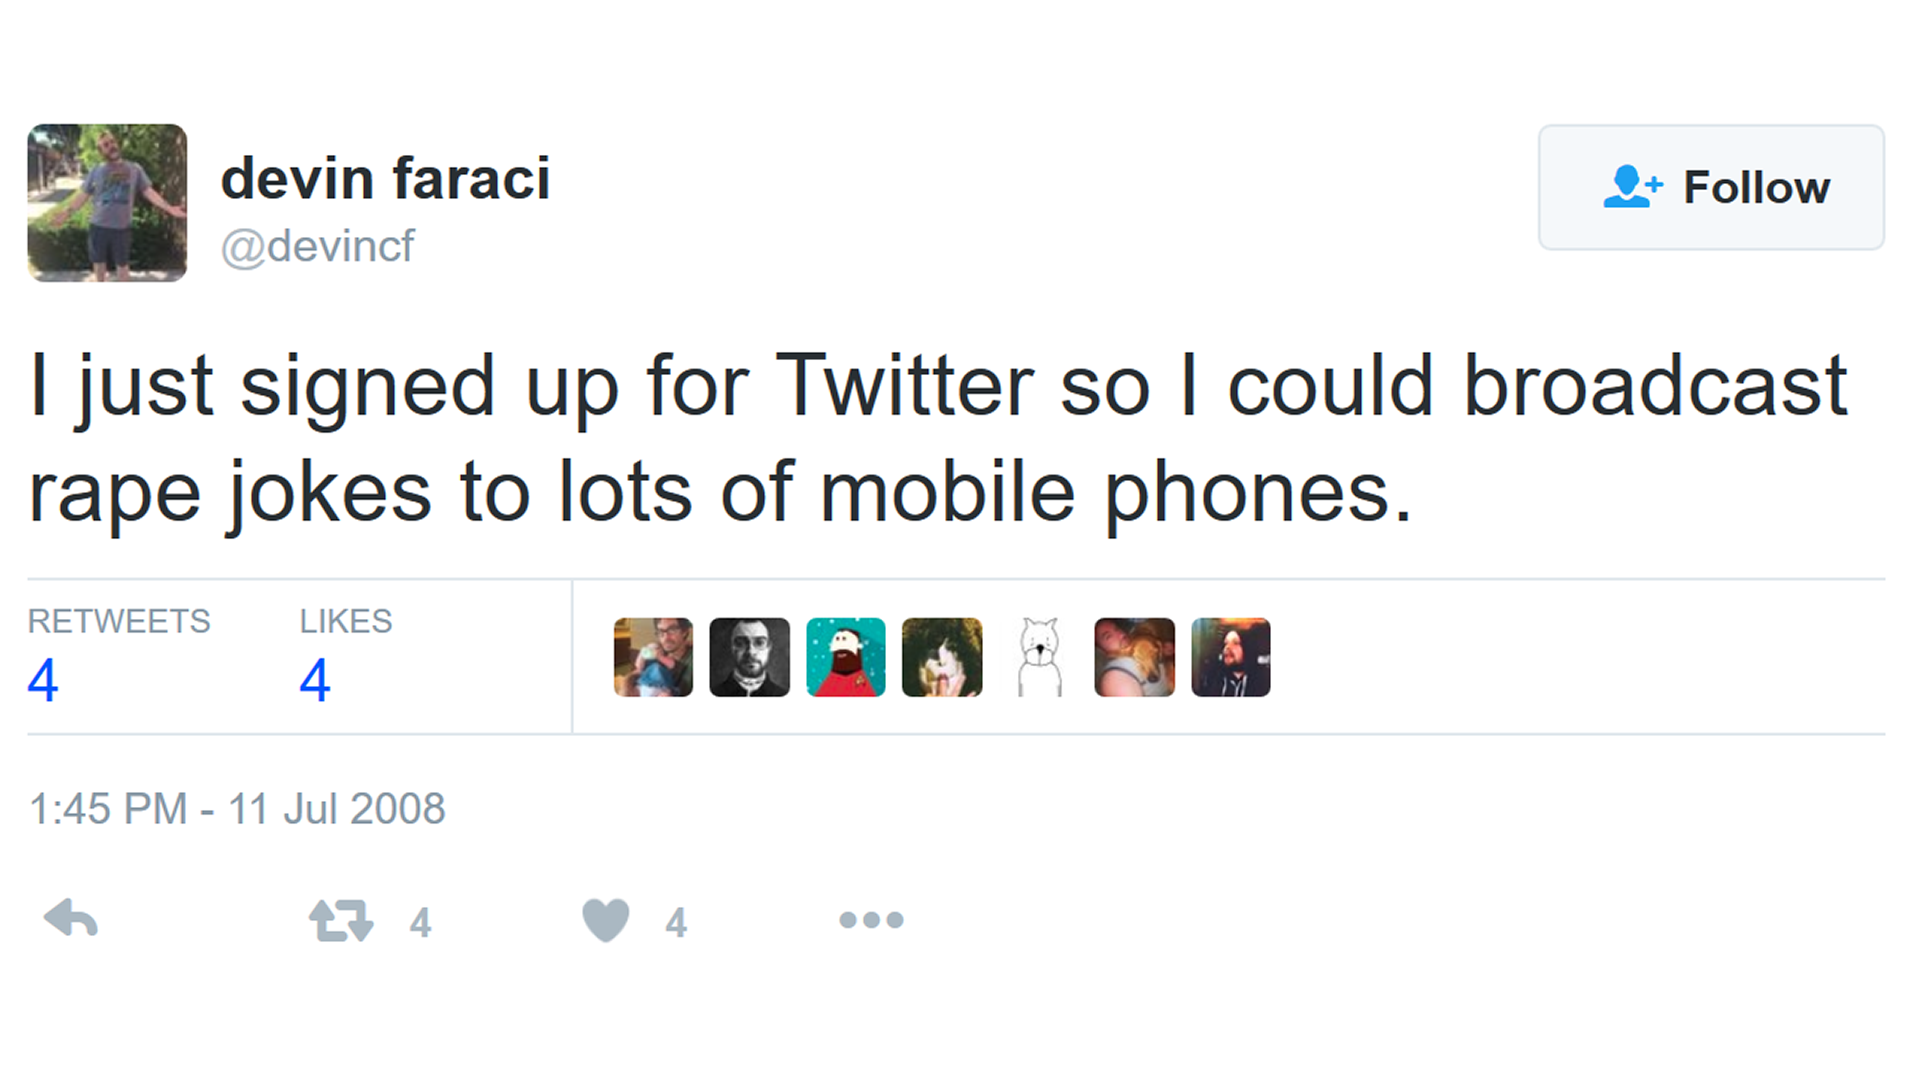 8084a6943 When Devin Faraci joined Twitter in July 2008, that was the first tweet he  made. What do we learn in that one, single tweet? He sees himself as a sort  of ...